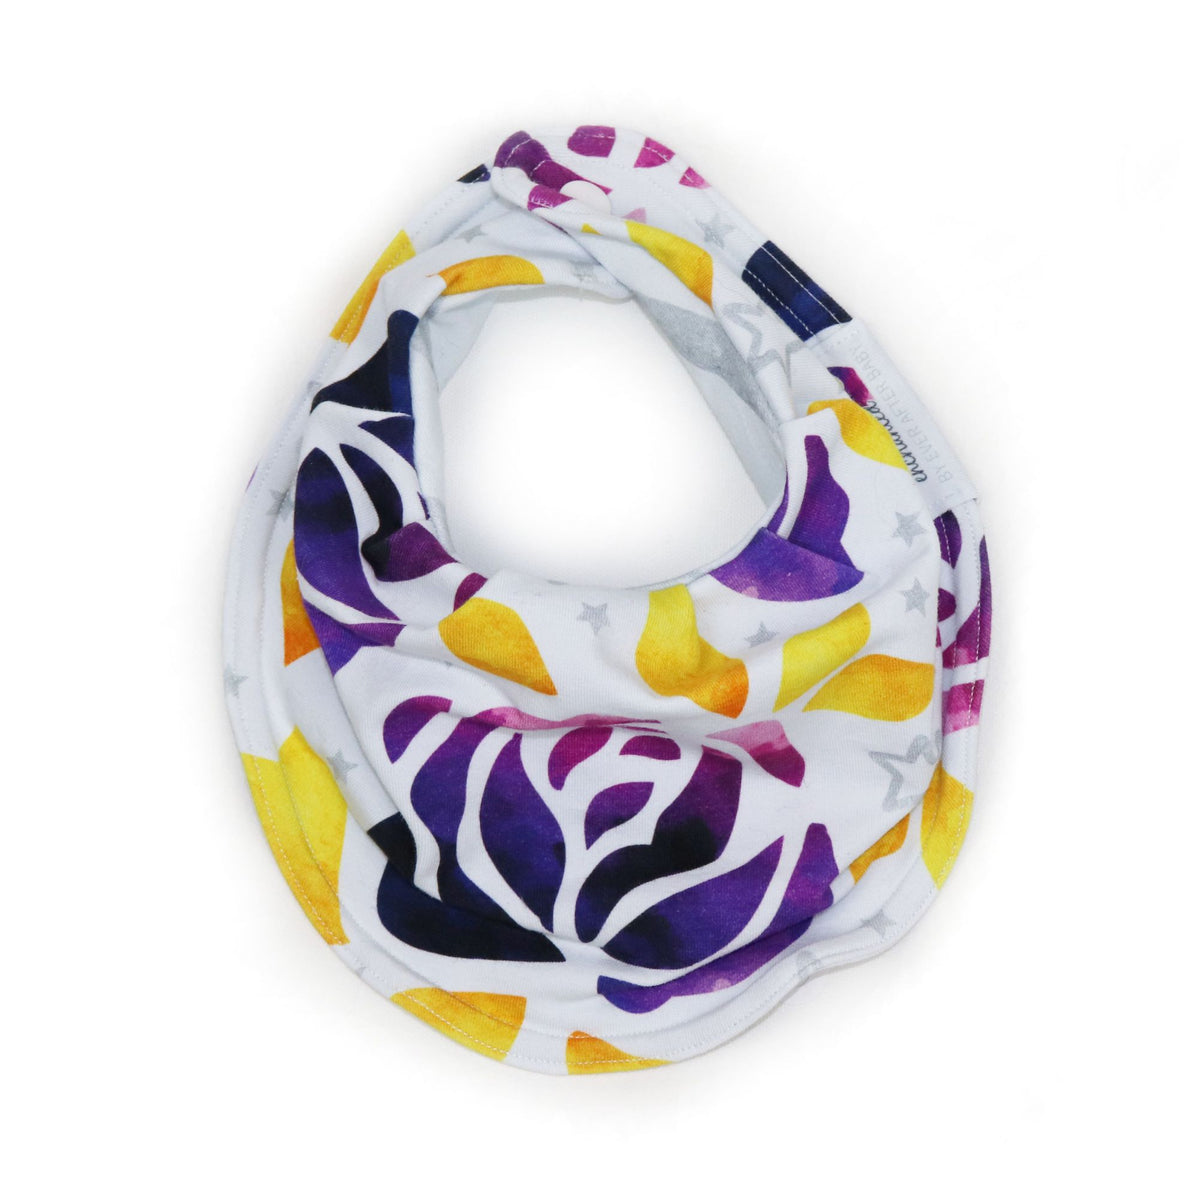 Bib Bundle in Enchanted Purple Rose